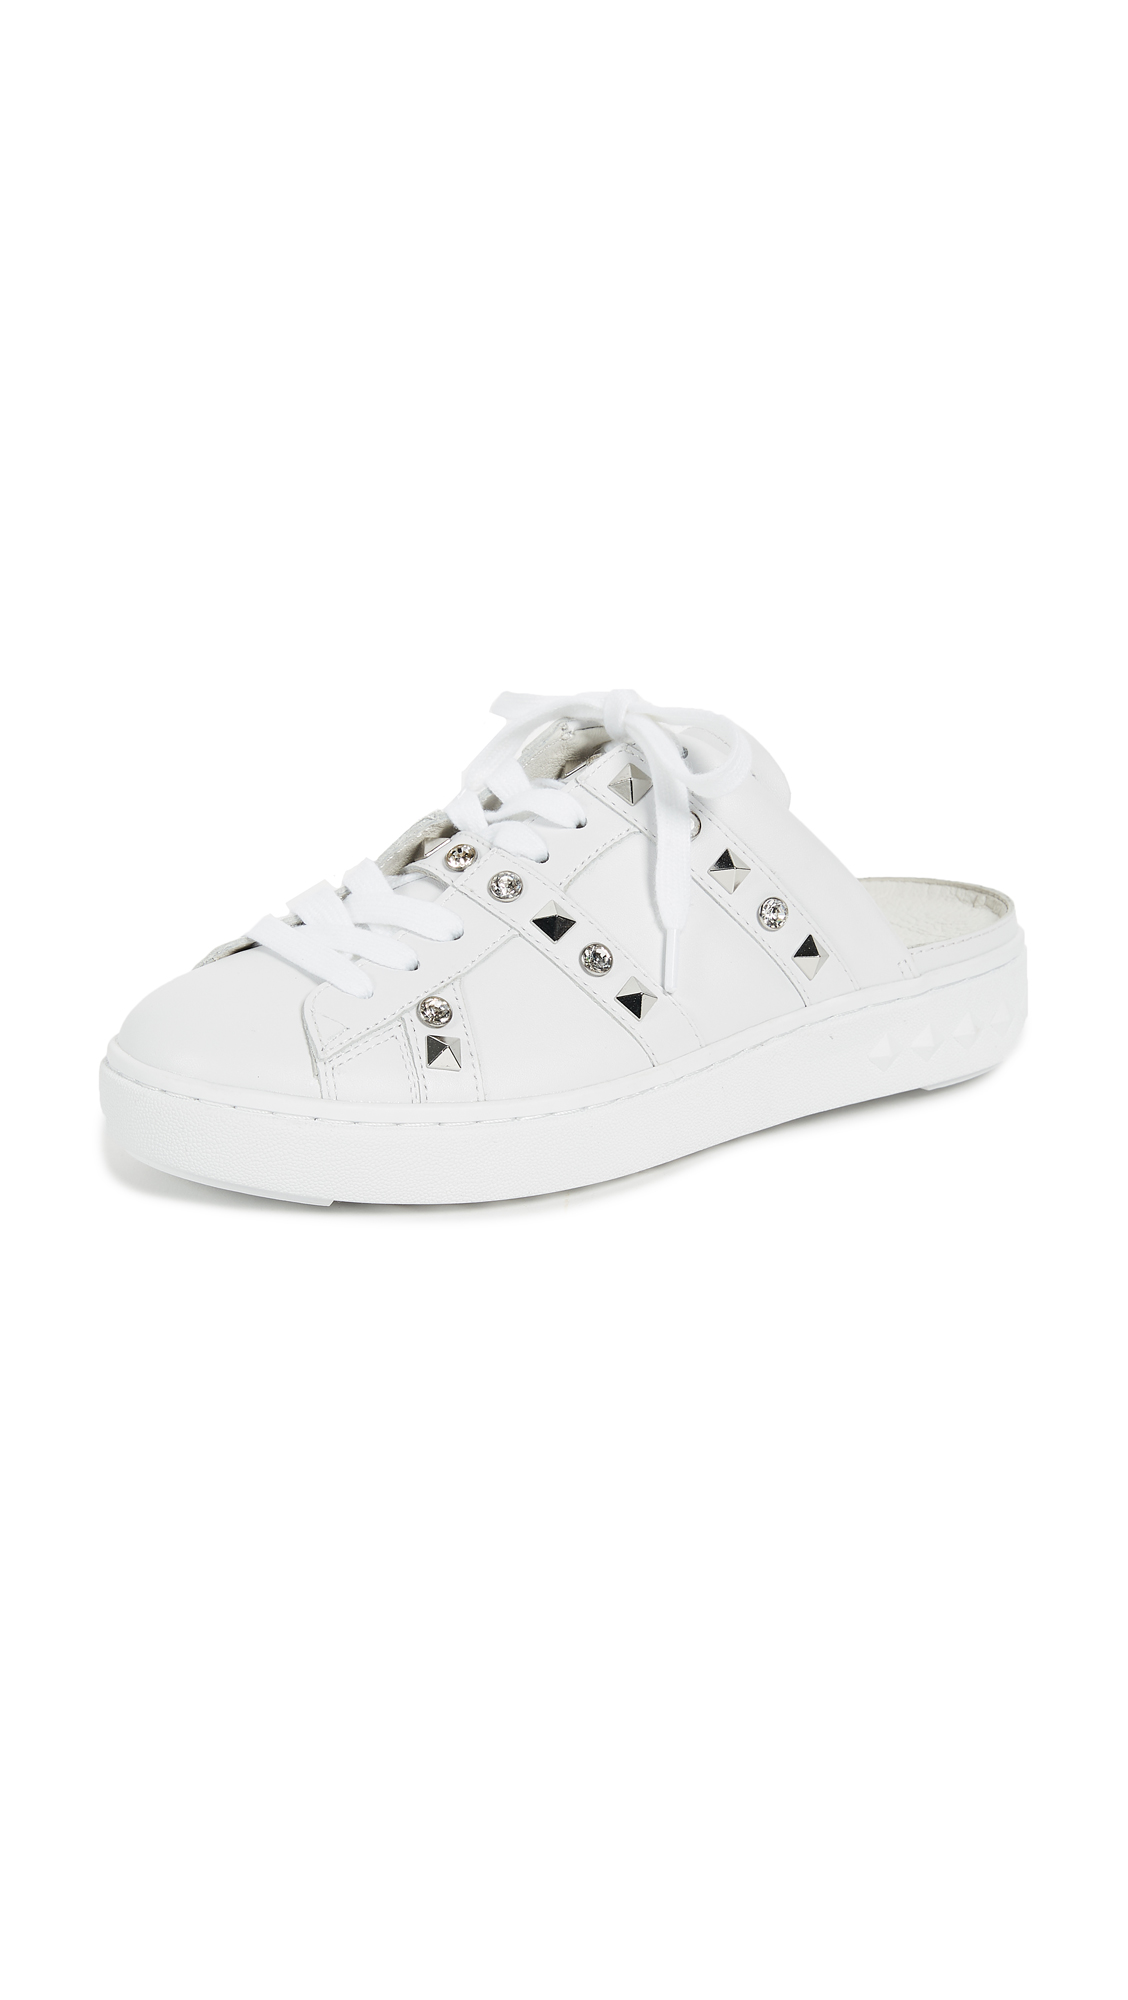 Ash Party Slide Sneakers - White